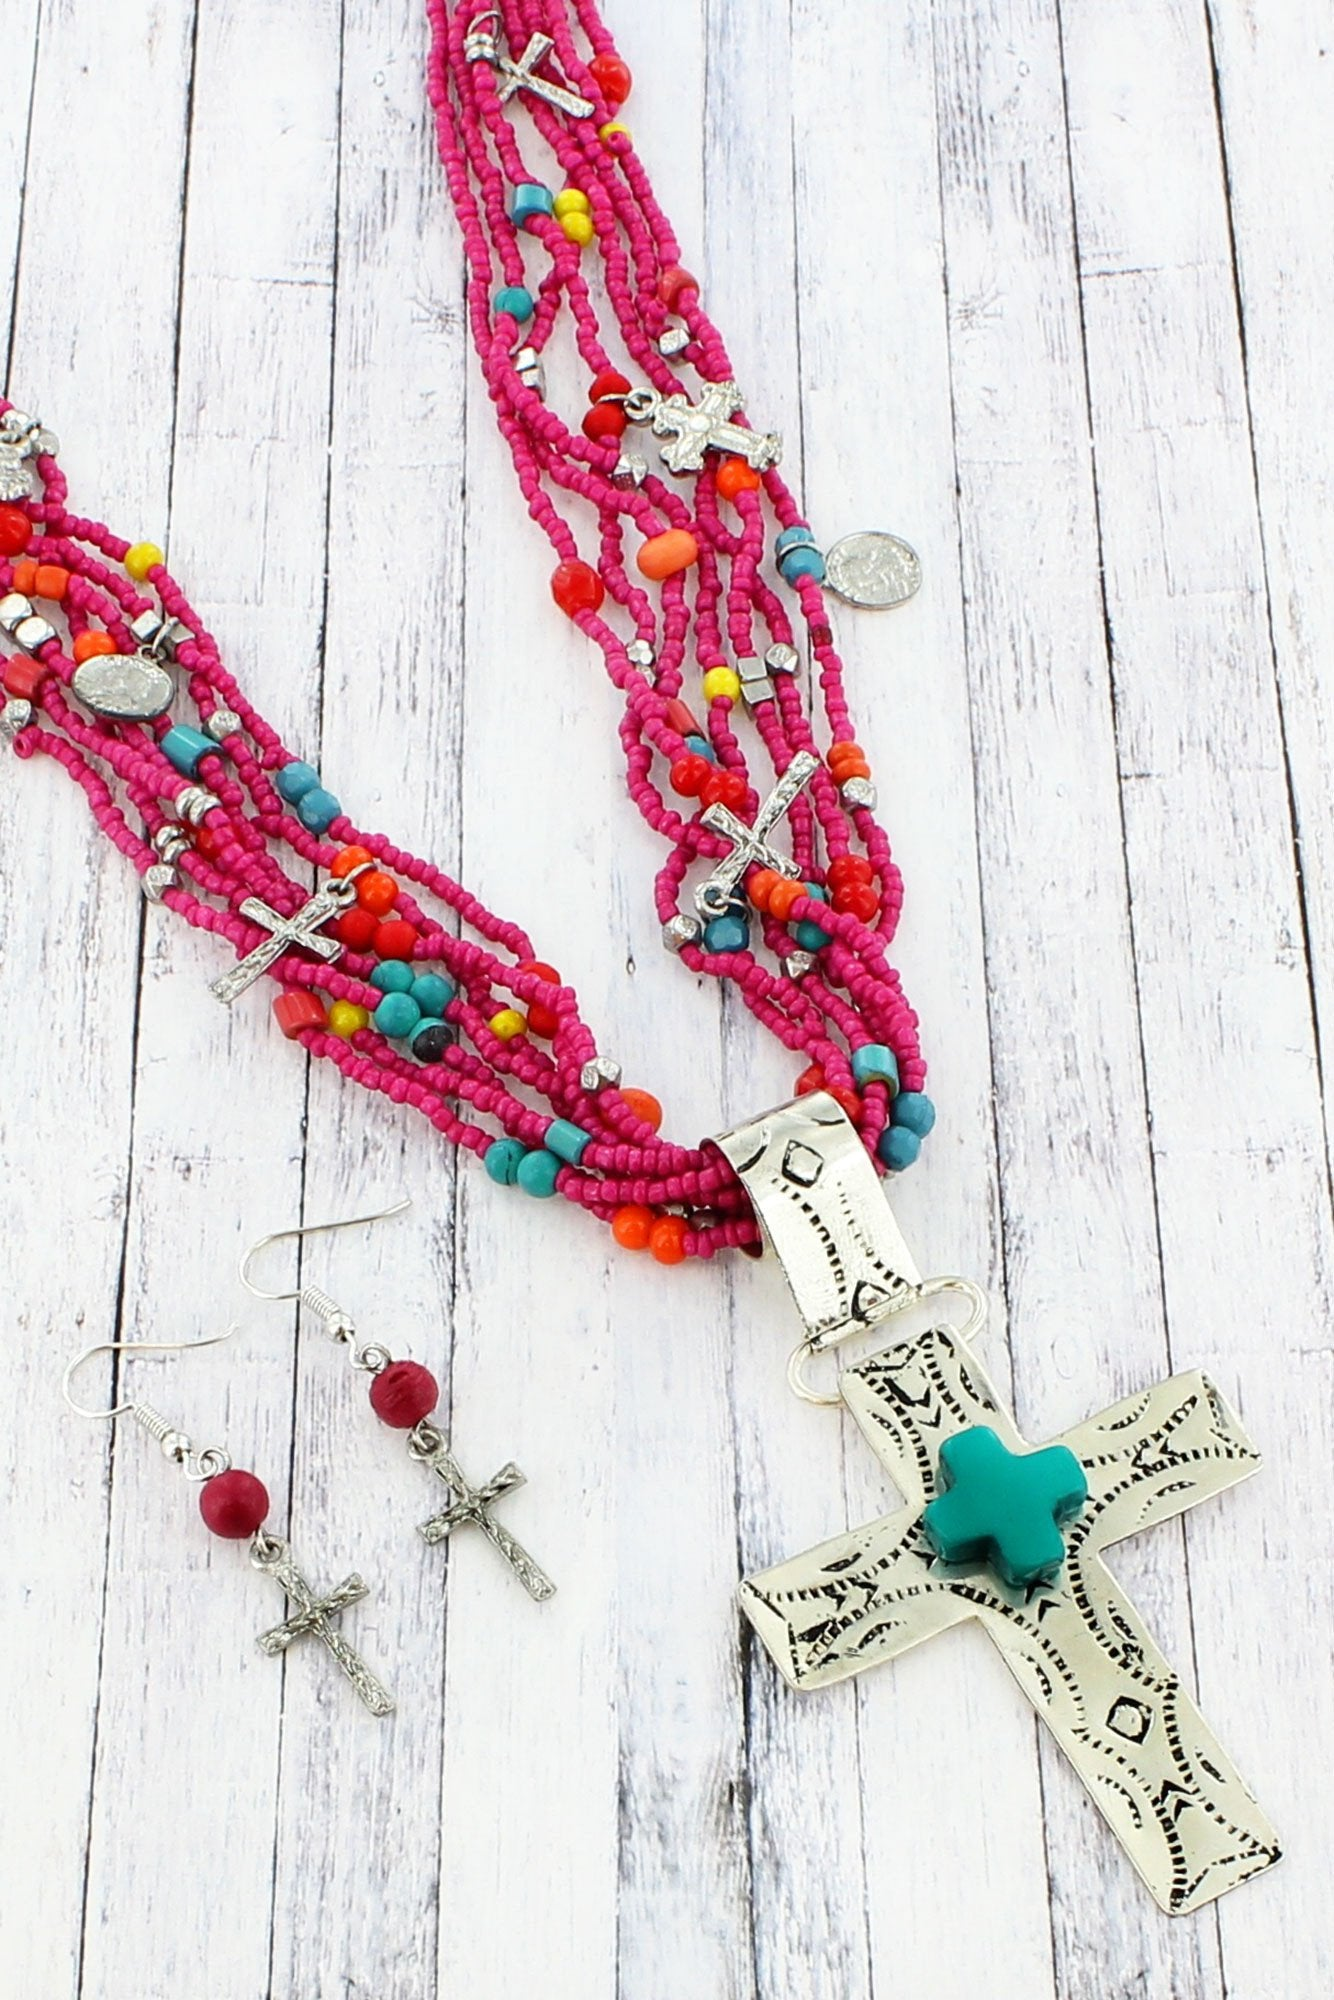 DISCONTINUED... Fuchsia, Turquoise, and Silvertone Cross Multi-Strand Beaded Necklace and Earring Set